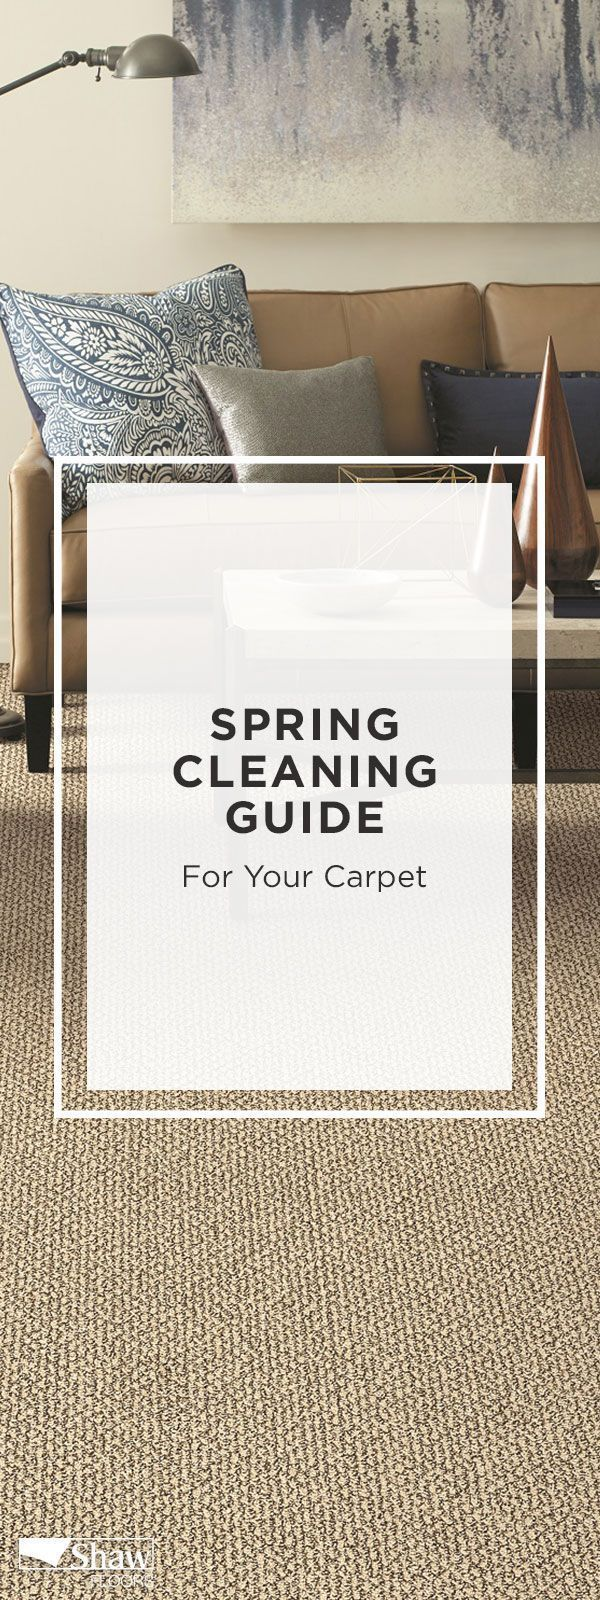 Save these carpet cleaning hacks, including stain removal tips and expert advice on steam cleaning, for your spring cleaning checklist. #cleaning #cleaninghacks #cleaningtips #carpet #carpetclceaning #springcleaning